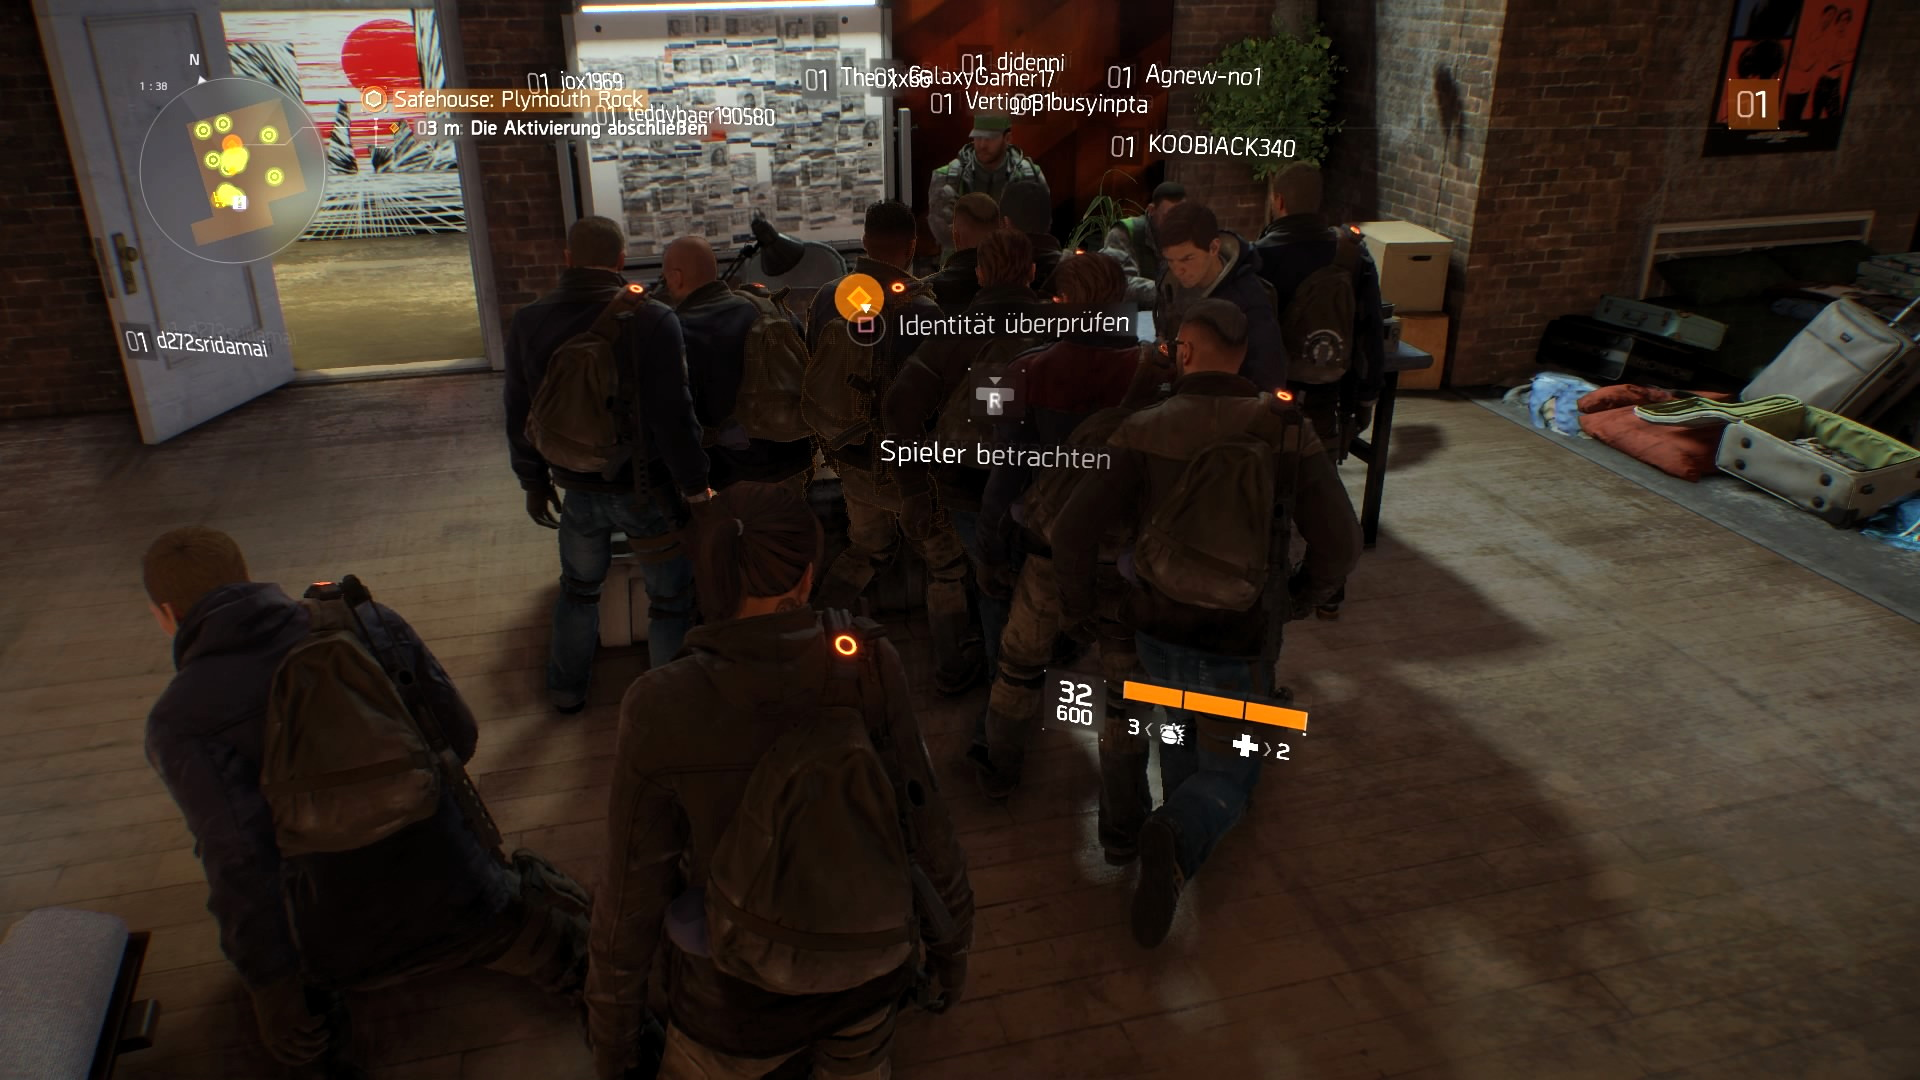 Safe house Chaos in Tom Clancy's The Division